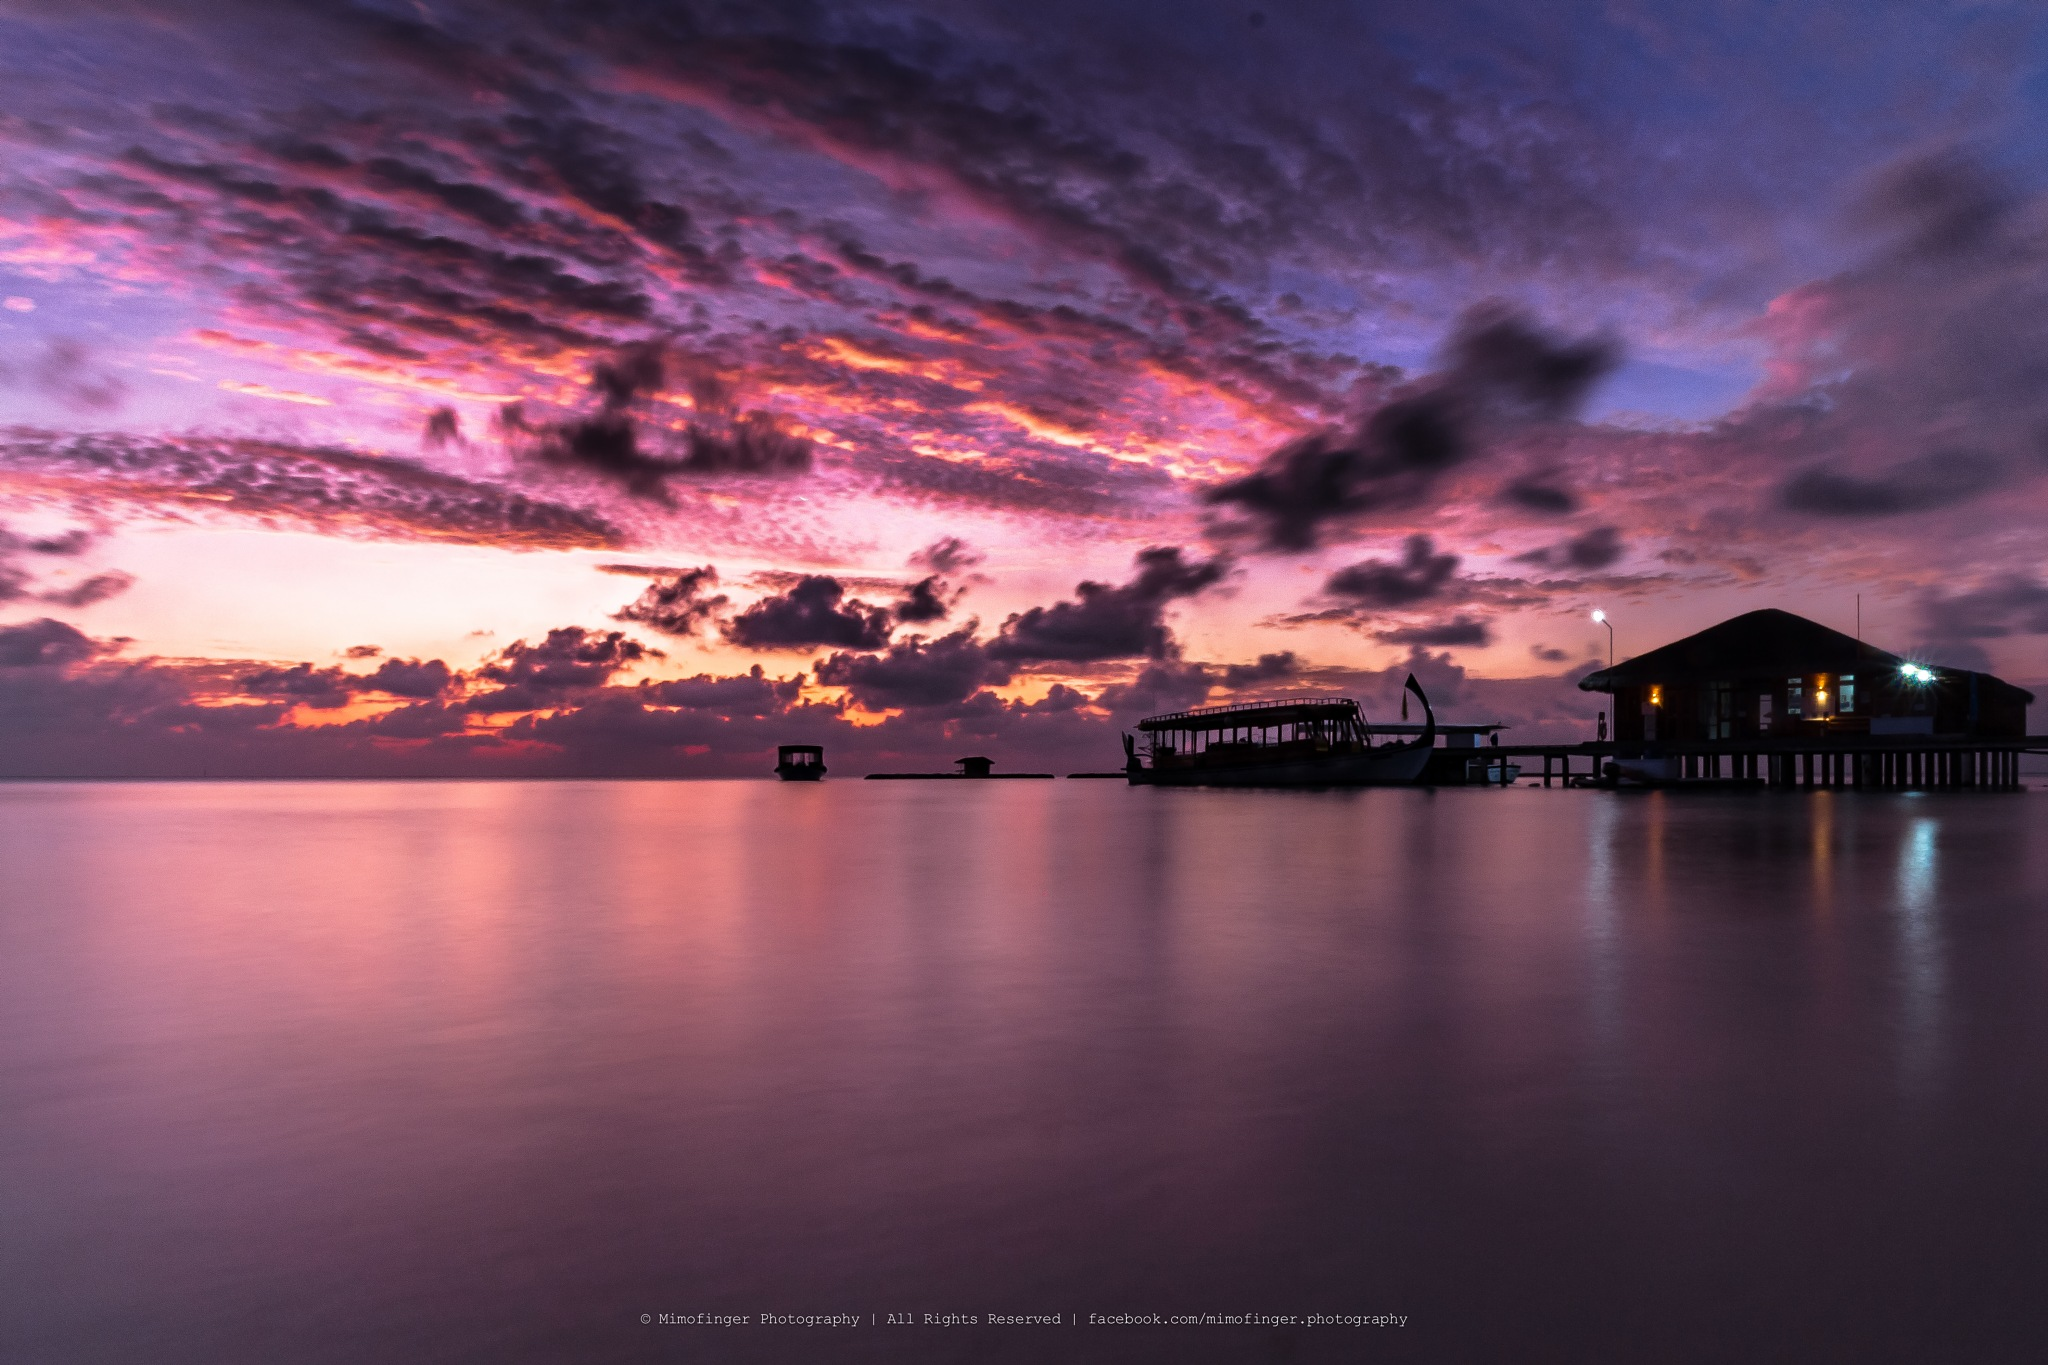 Maldives by Mimofinger Photography